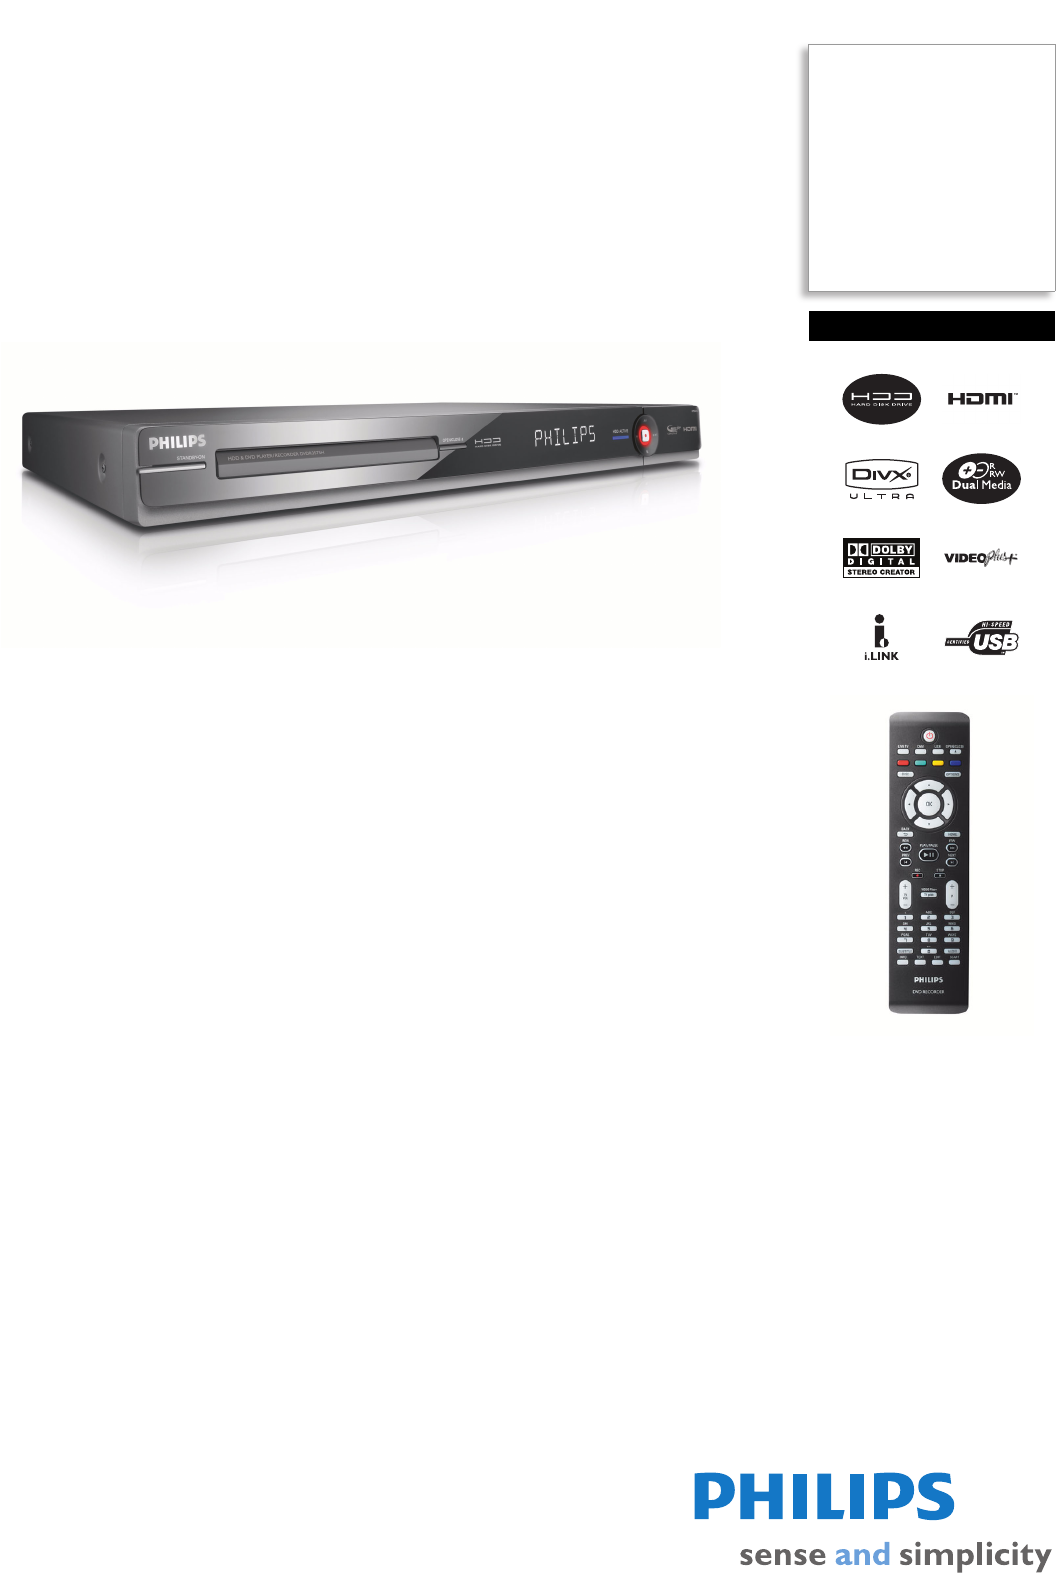 philips dvd recorder dvdr3575h 05 user guide manualsonline com rh tv manualsonline com philips hdd dvd player recorder dvdr3575h manual Philips DVD Recorder Hard Drive